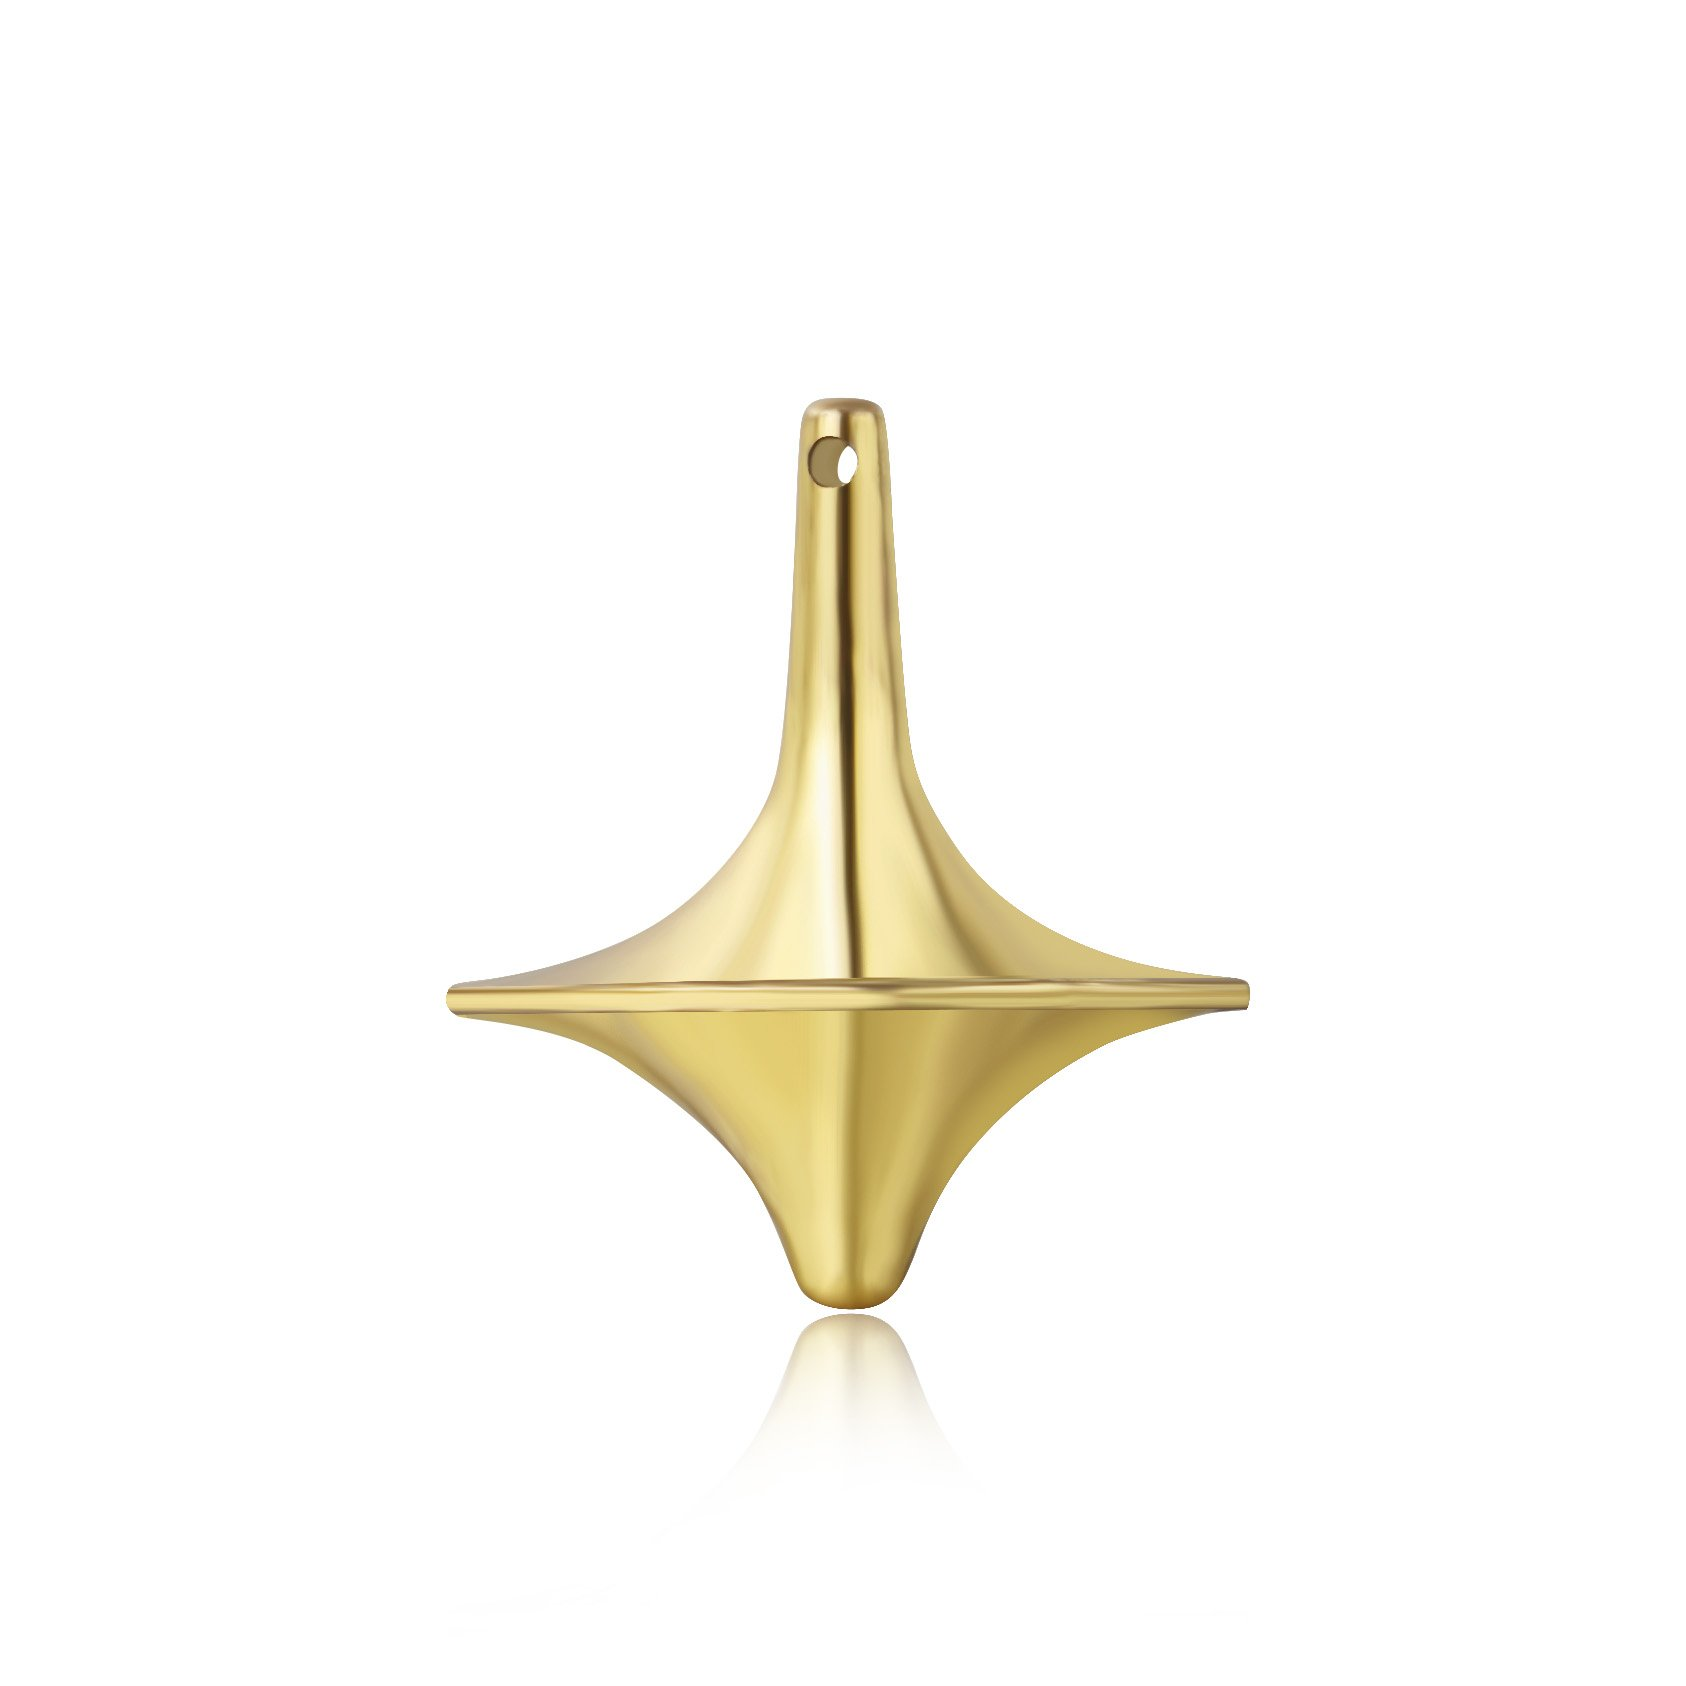 The Perfect Balance between Performance and Beauty by ForeverSpin ForeverSpin Bronze Spinning Top Spinning Tops Built to Last and Spin Forever